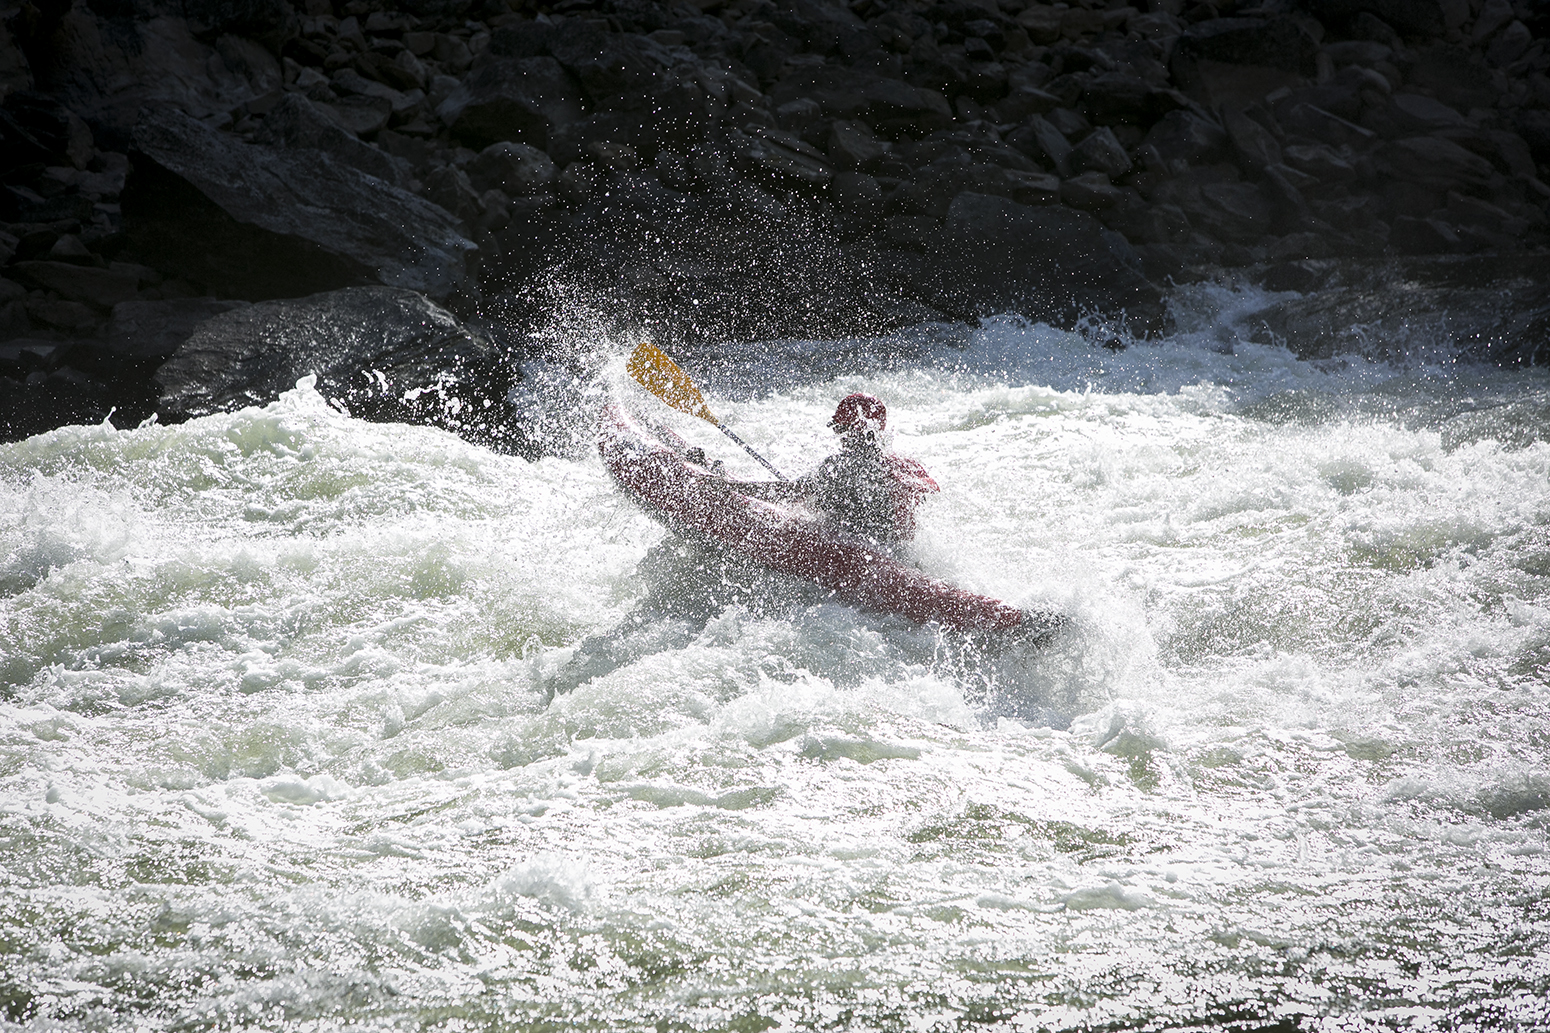 A solo ducky in the turbulent waters of Alder Rapid on the River of No Return, Summer 2015.